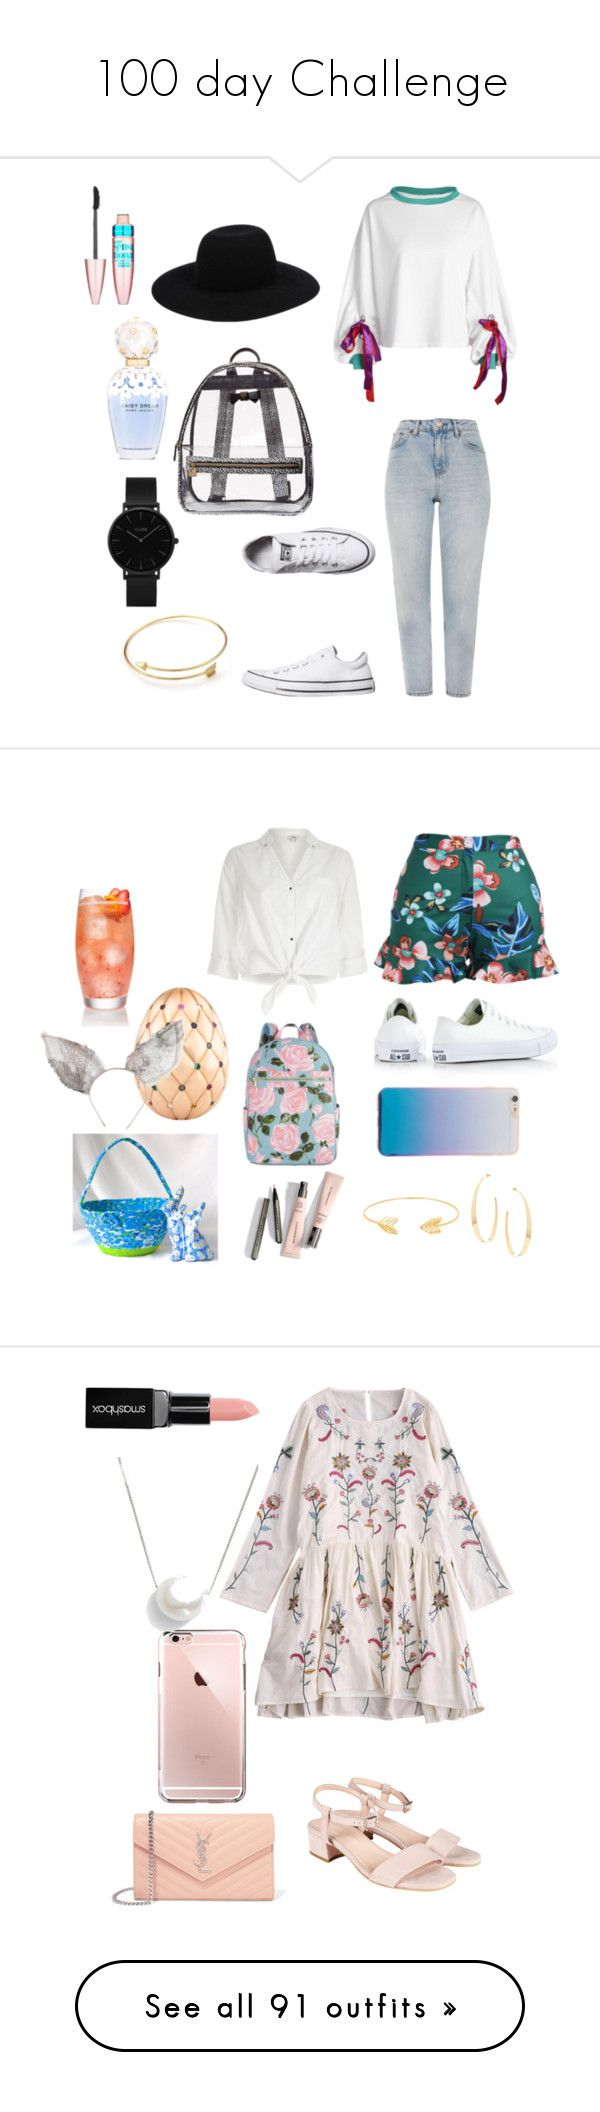 """""""100 day Challenge"""" by sofifer ❤ liked on Polyvore featuring Topshop, Converse, Betsey Johnson, Off-White, CLUSE, Marc Jacobs, Maybelline, River Island, ban.do and Lana"""